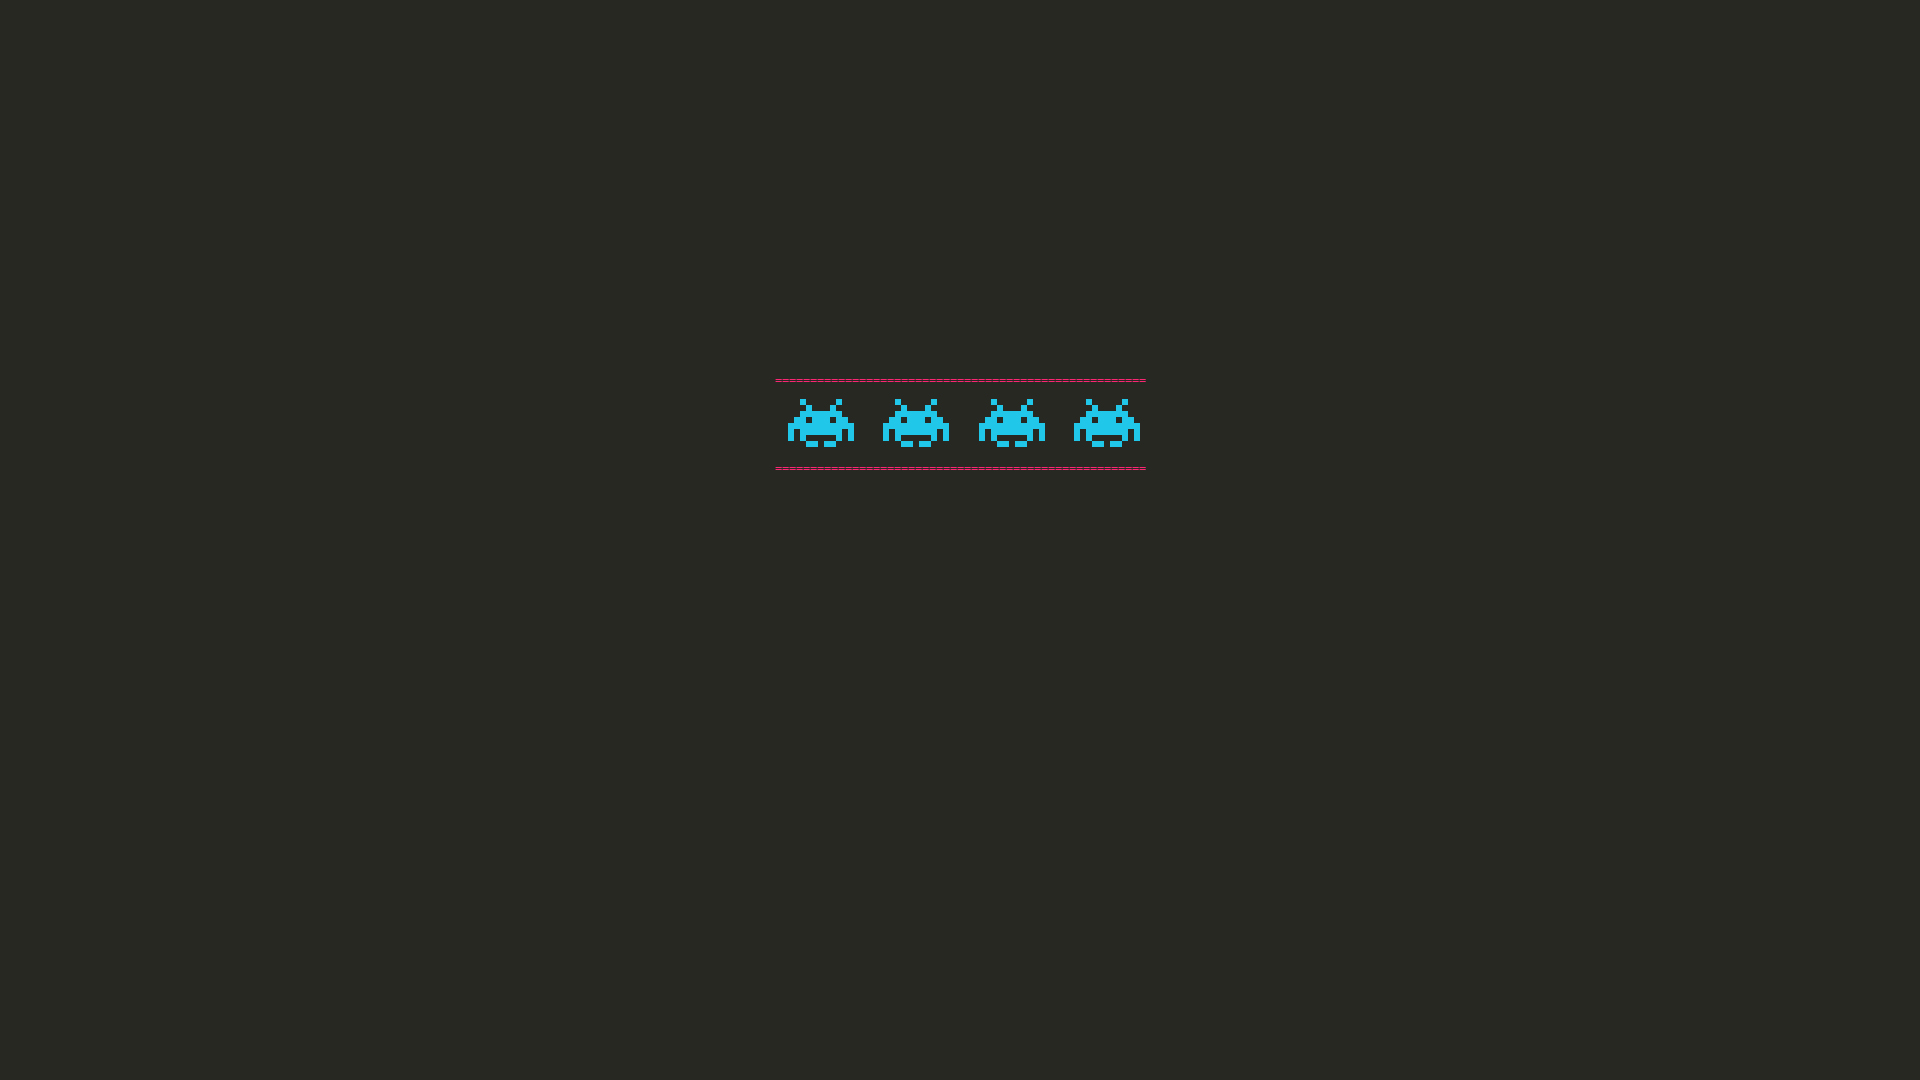 Space Invaders Minimalism, HD Games, 4k Wallpapers, Images ...